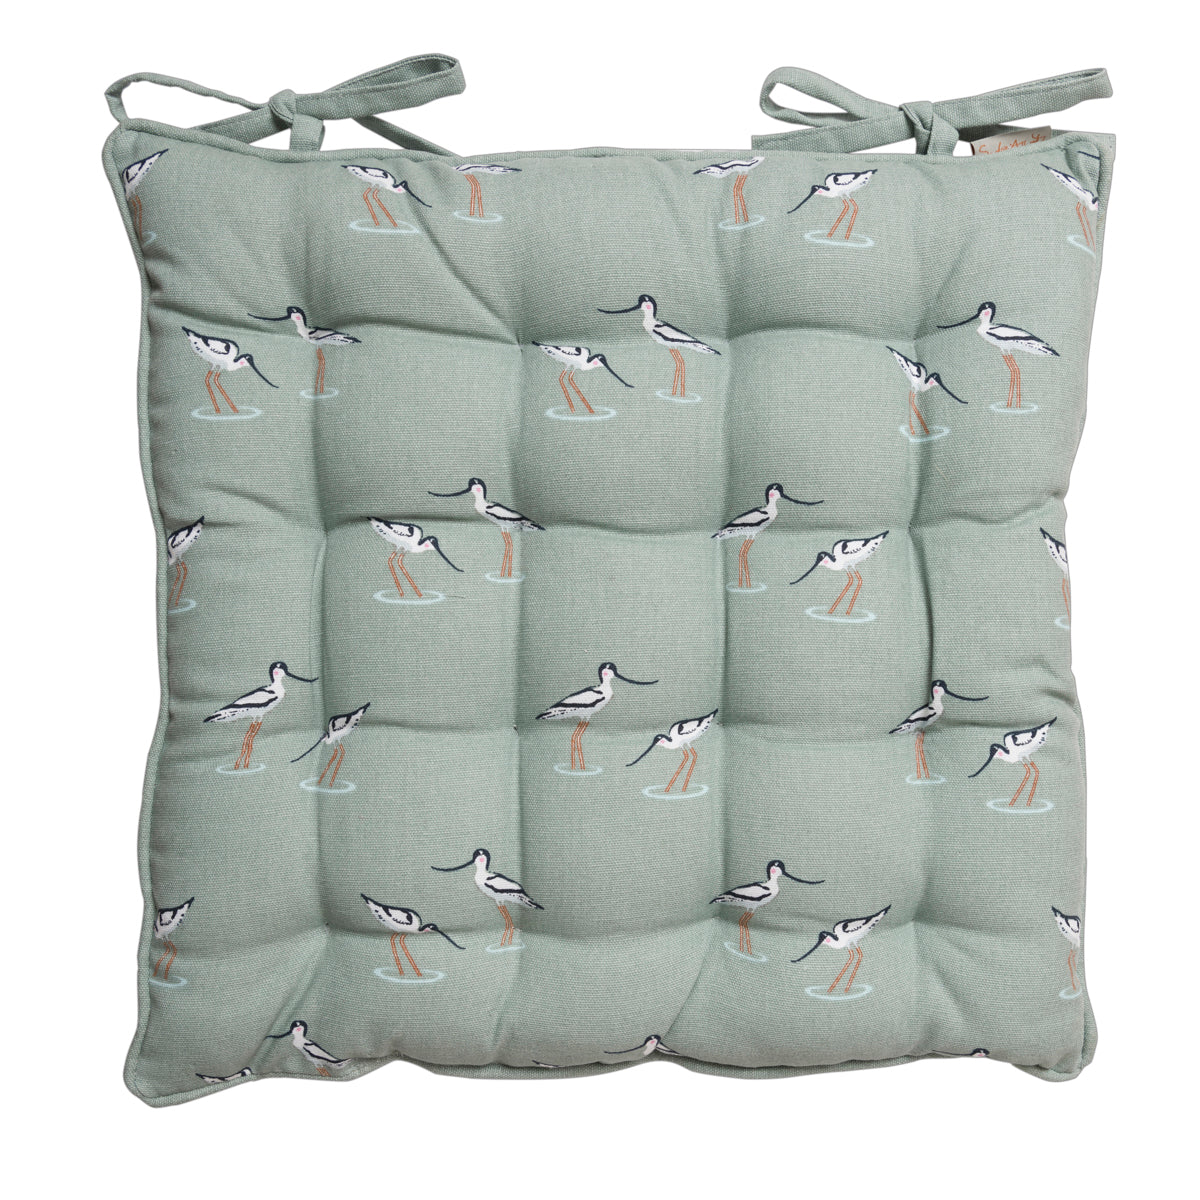 Coastal Birds chair pad with ties by Sophie Allport